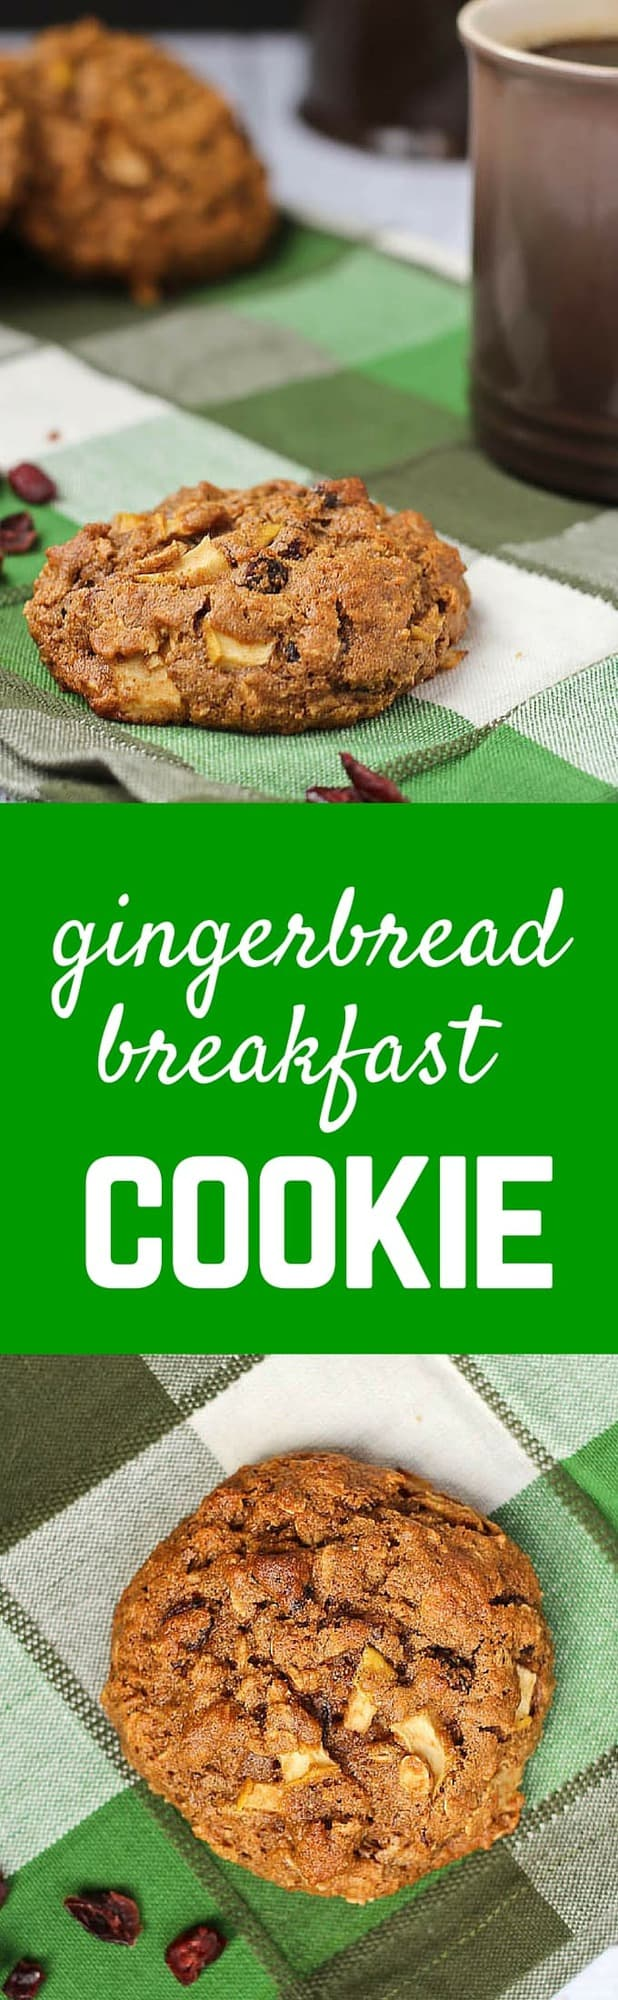 Thisflavorful gingerbread breakfast cookie recipe yields a filling, delicious, and healthy way to start the day. They have some fun ingredients to keep you satisfied! Get the easy recipe on RachelCooks.com!